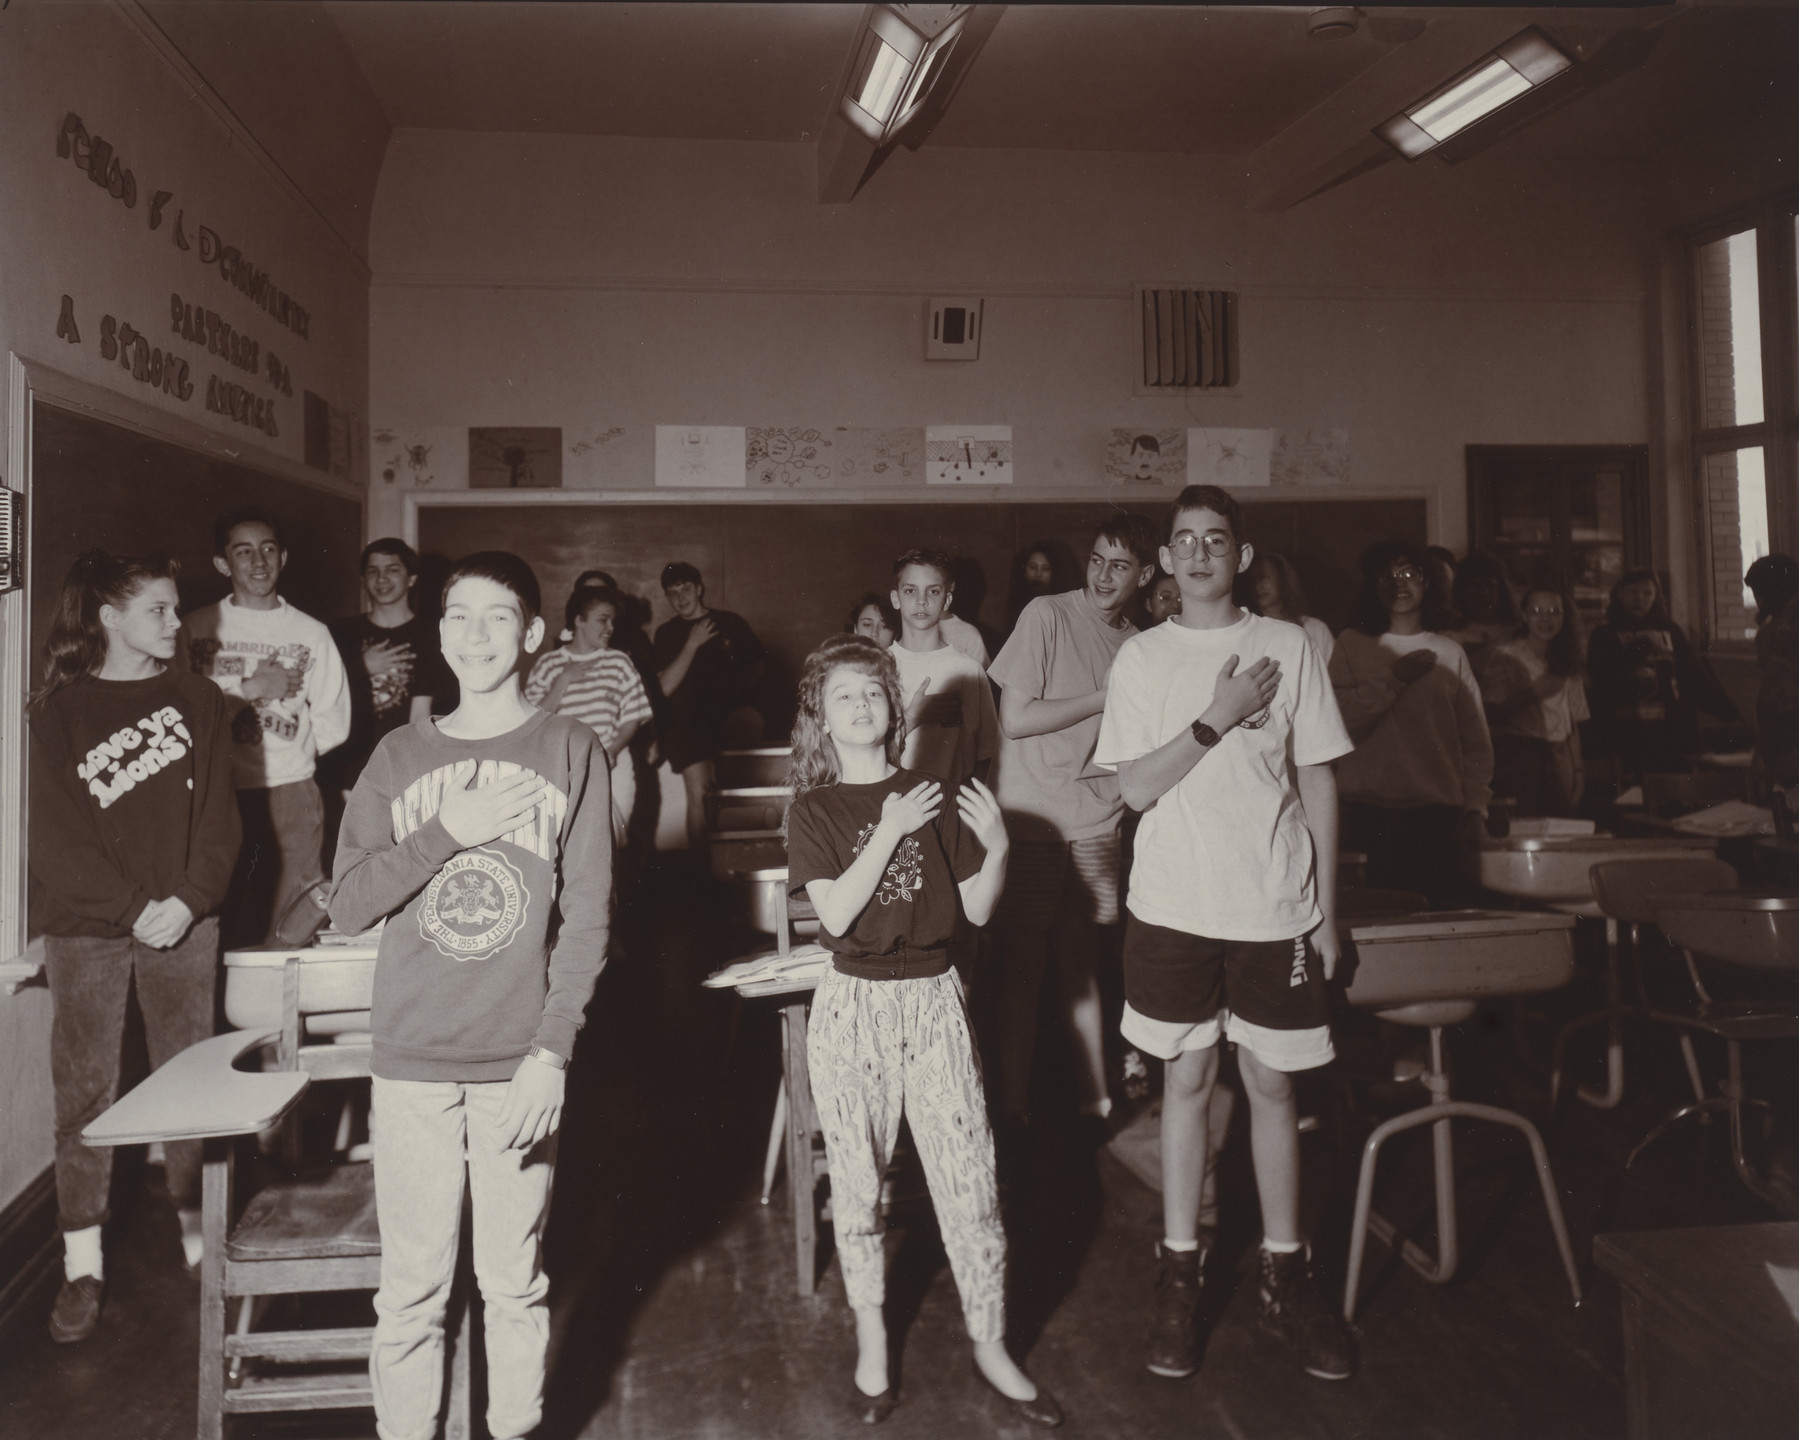 Judith Joy Ross. Pledging Allegiance, 8th Grade Homeroom, H.F. Grebey Junior High School, Hazelton, Pennsylvania. 1992